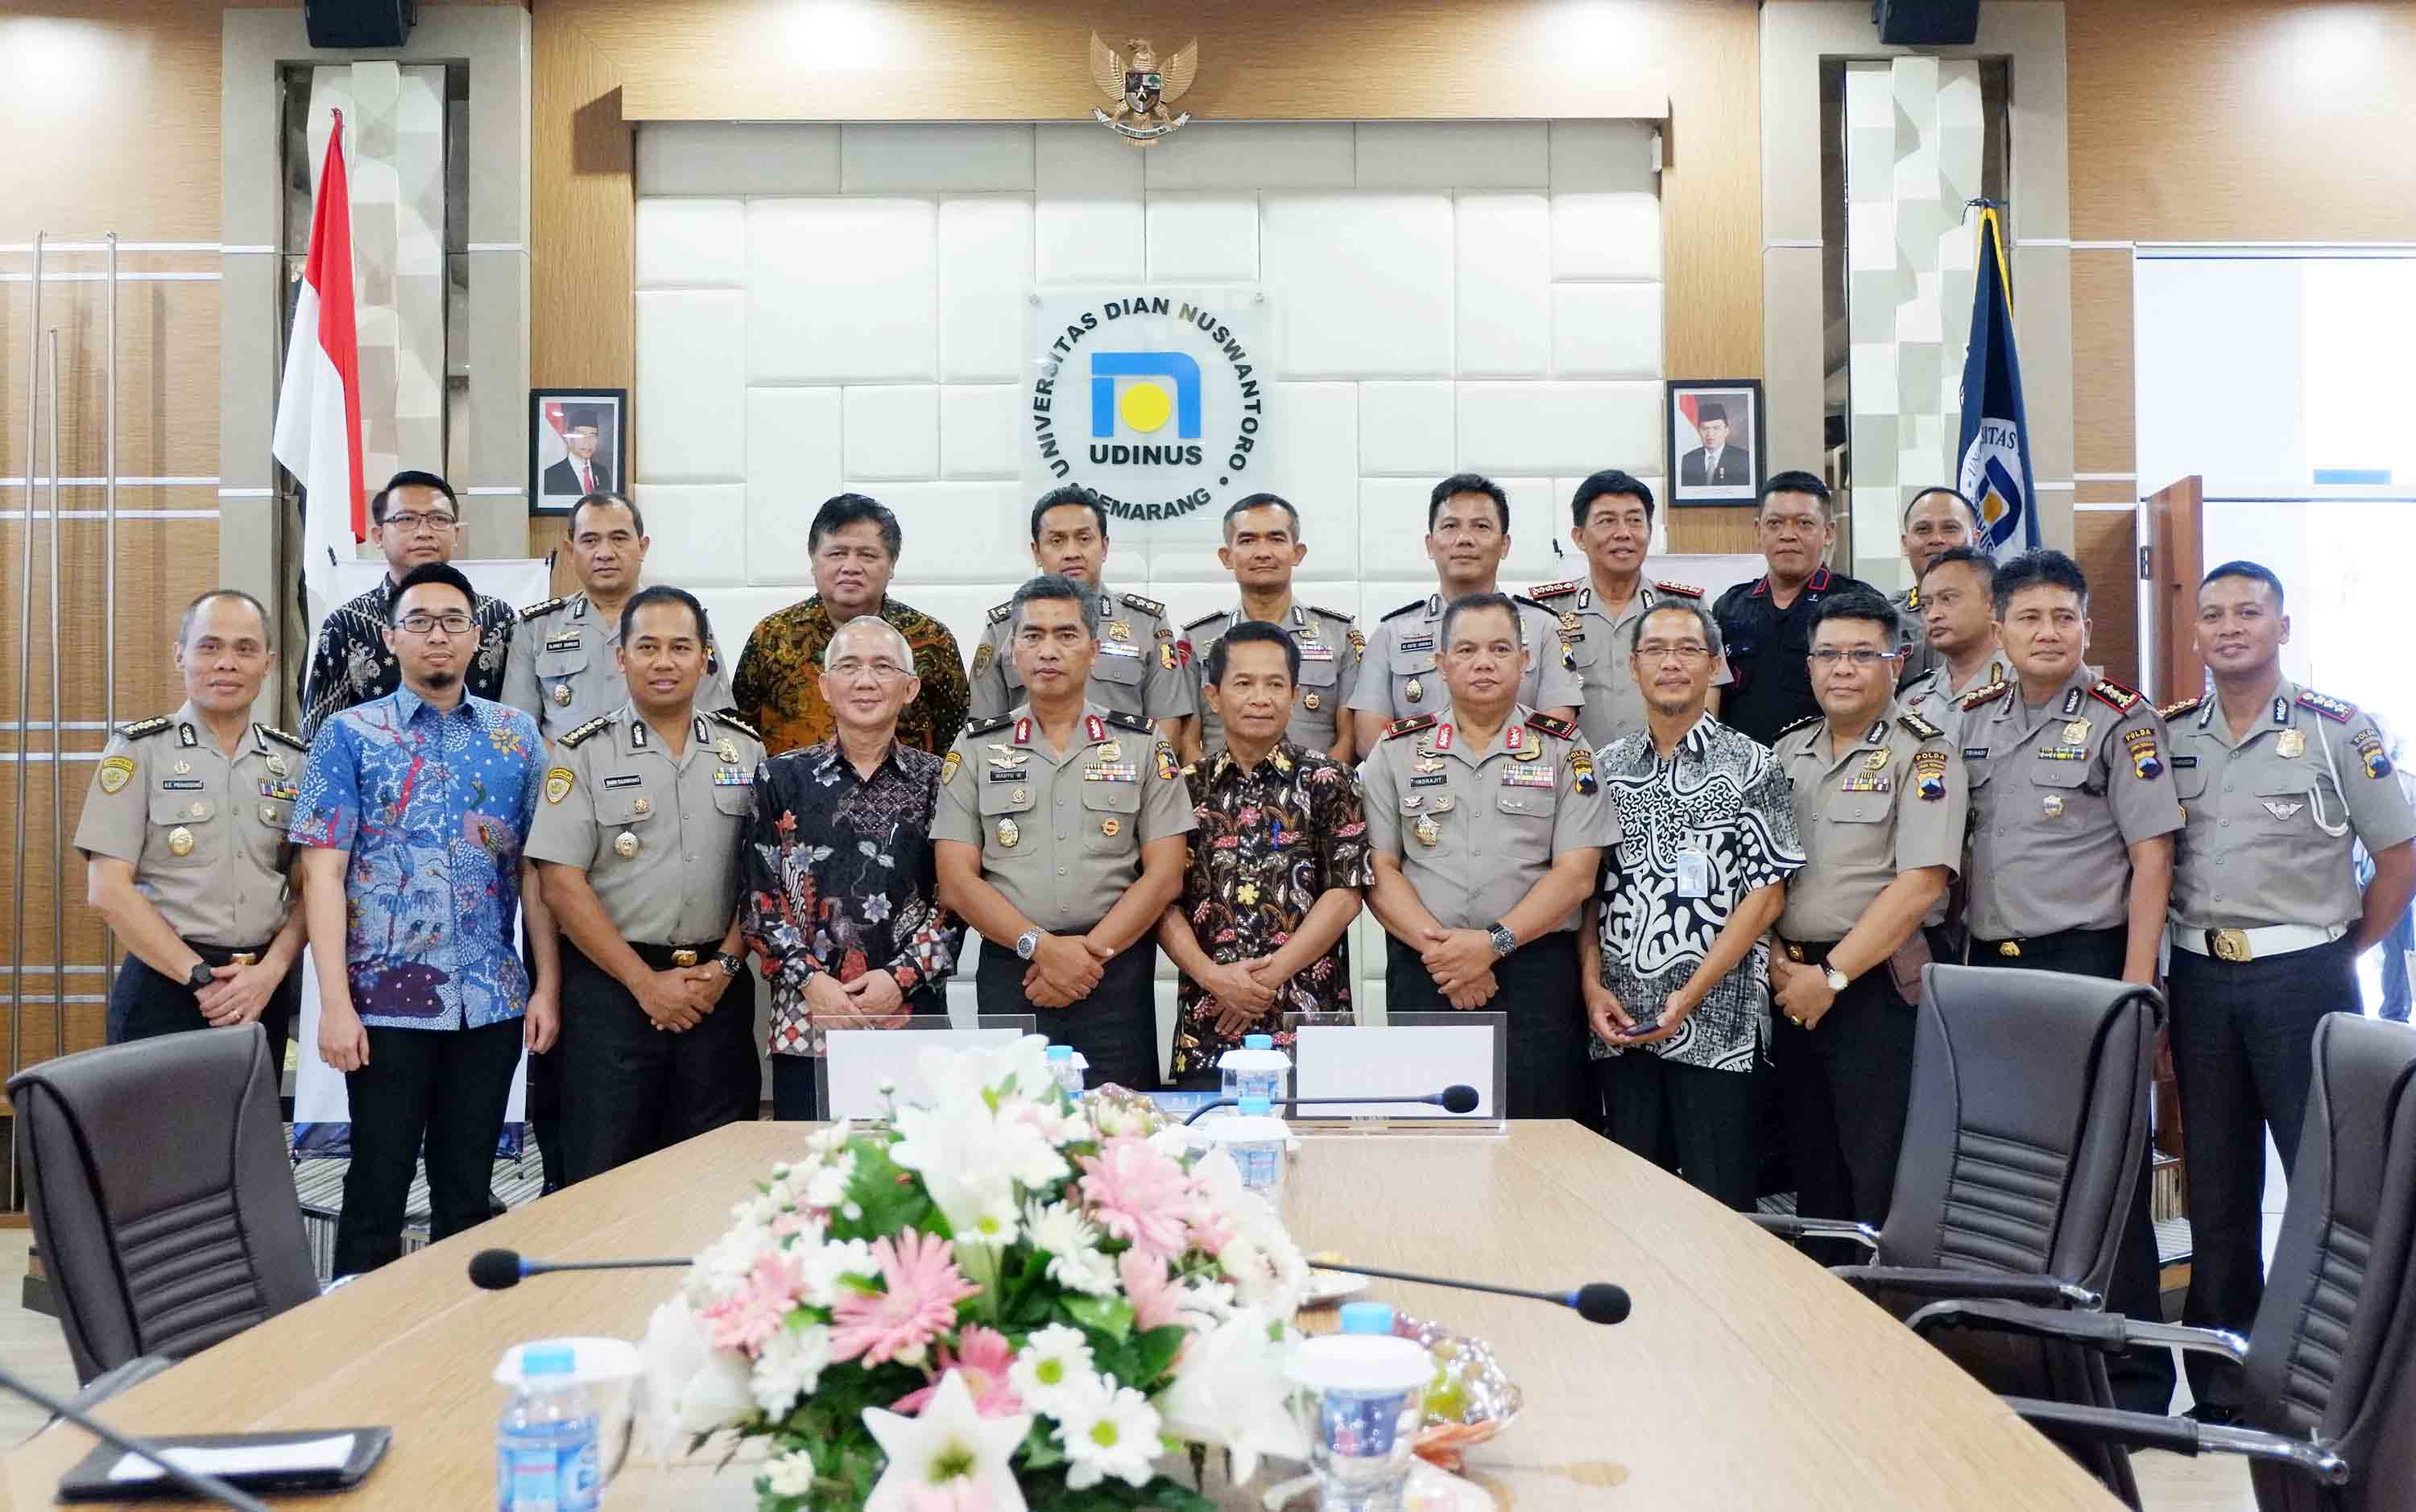 TO  MONITOR 400 THOUSAND PERSONNEL, POLRI ESTABLISHED AN MOU WITH UDINUS